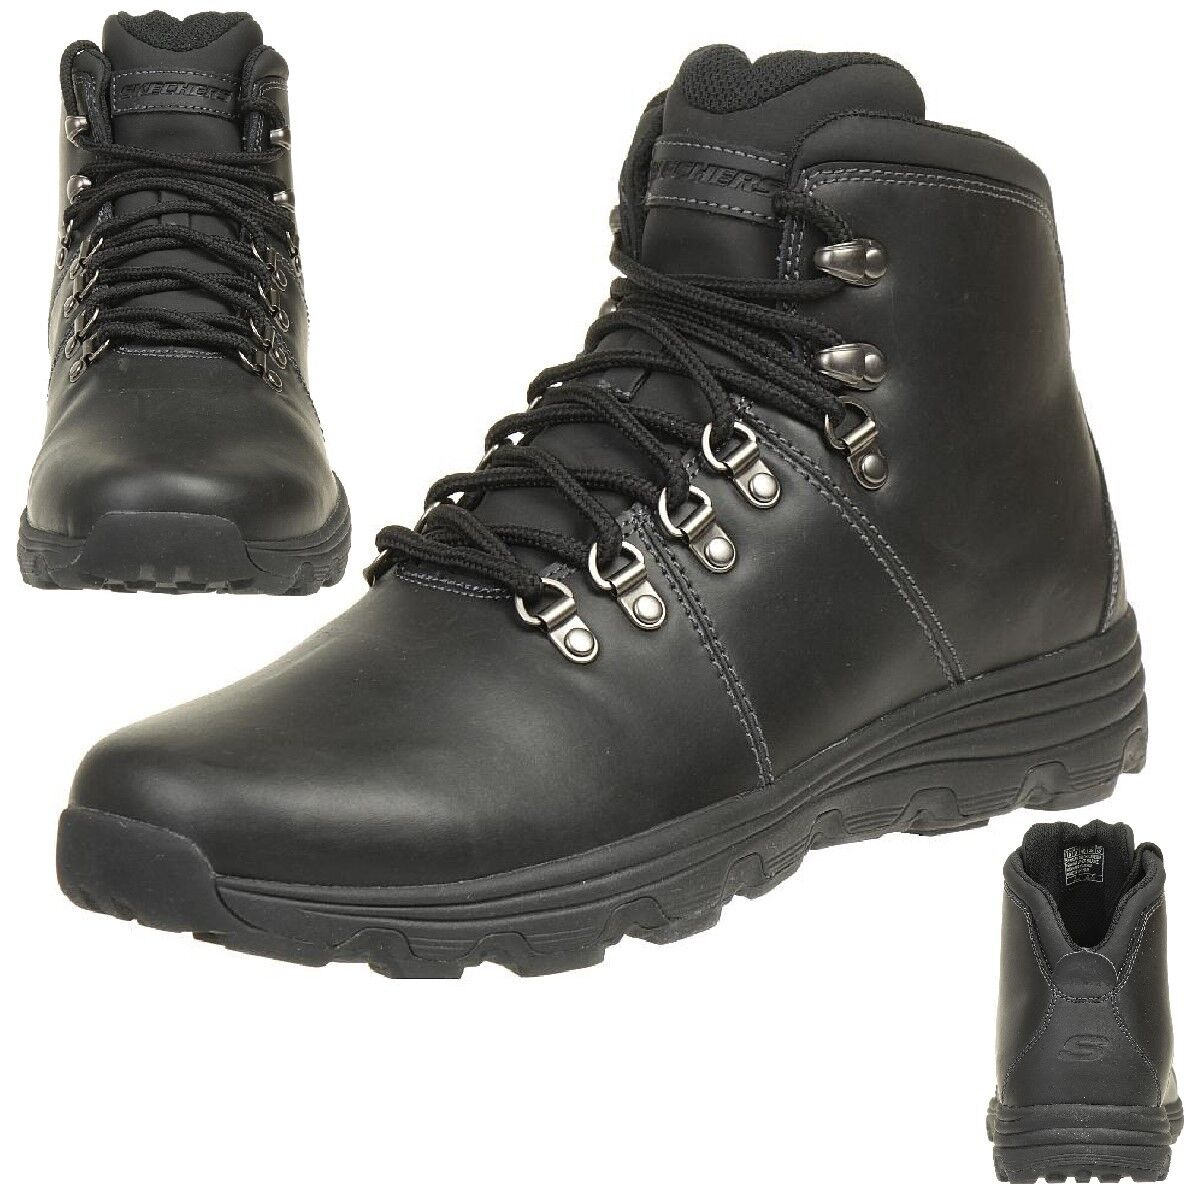 Skechers formato Impermeables edgin Botas outdoor Zapatos Impermeables formato Relaxed Fit BLK fb7374